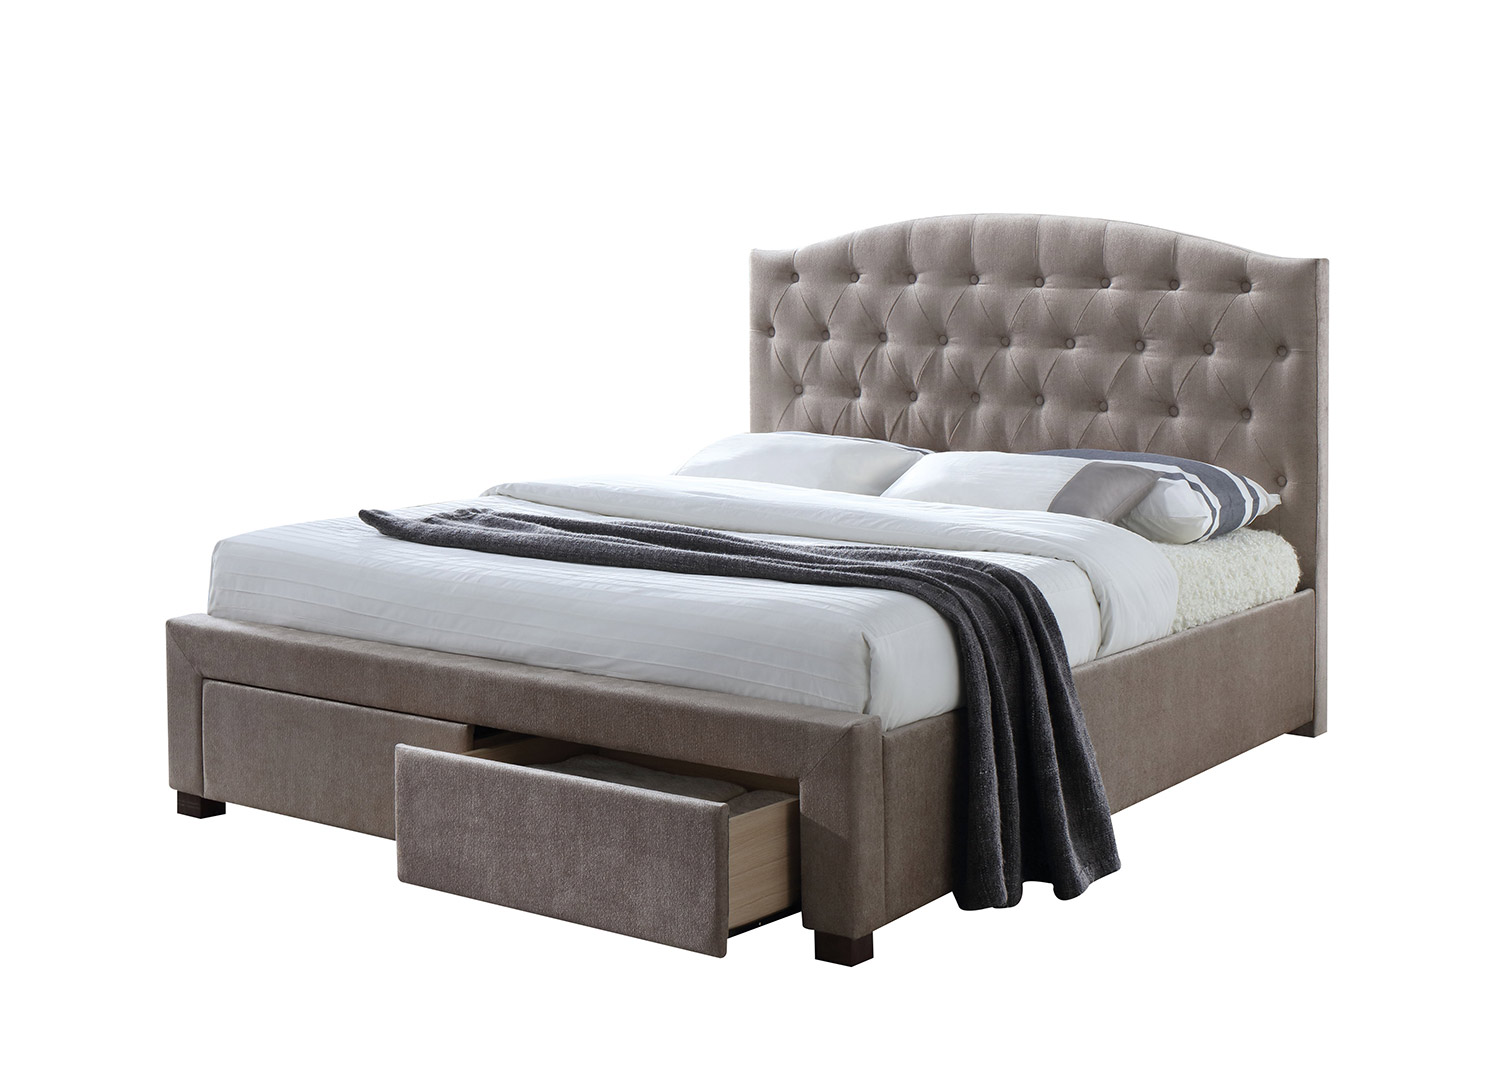 Acme Denise Bed with Storage - Mink Fabric